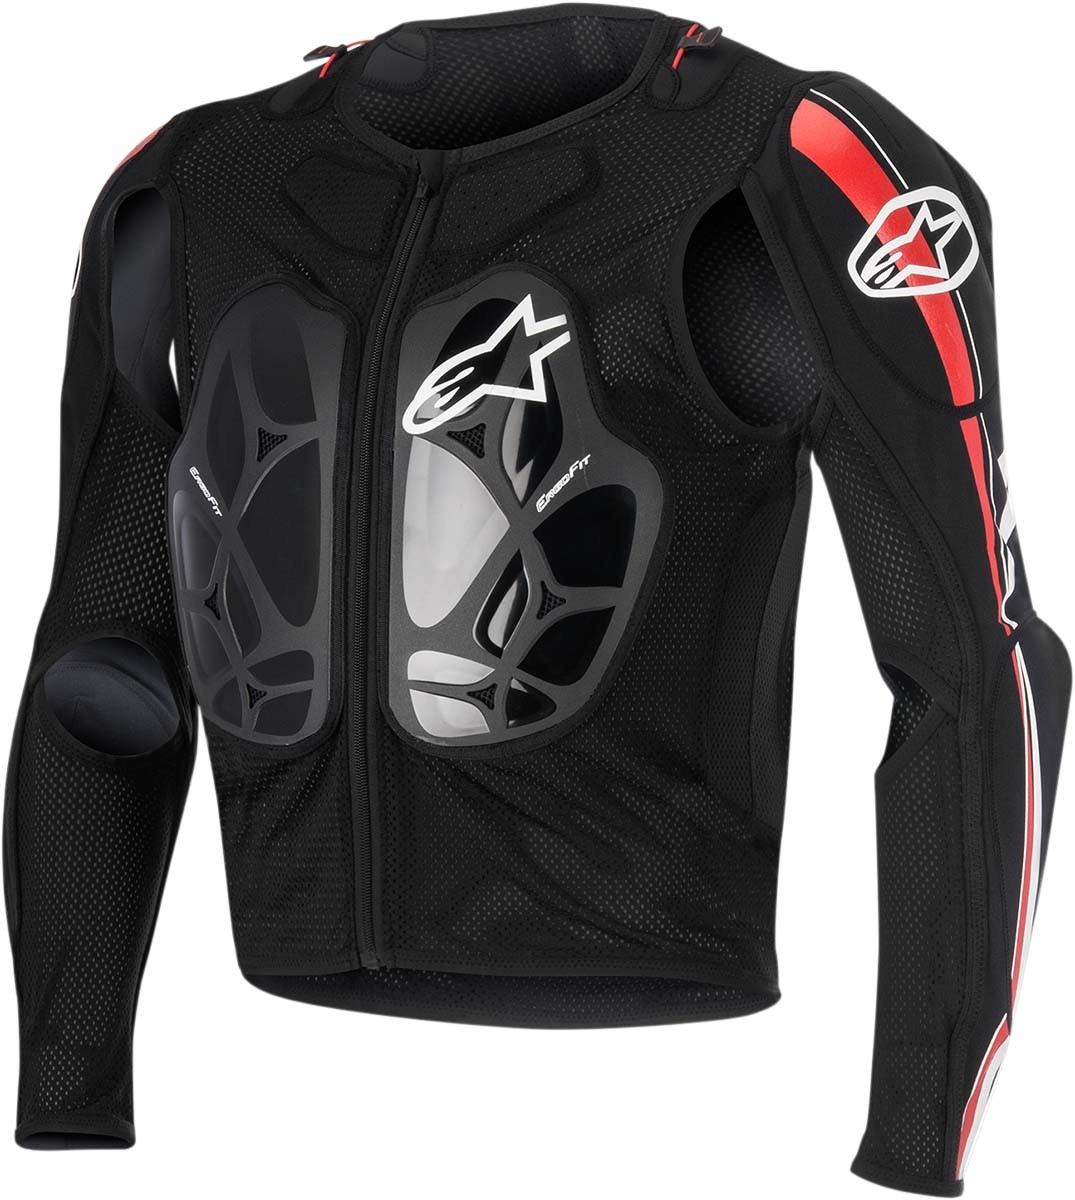 Alpinestars BIONIC PRO Protection Jacket (Black/Red)